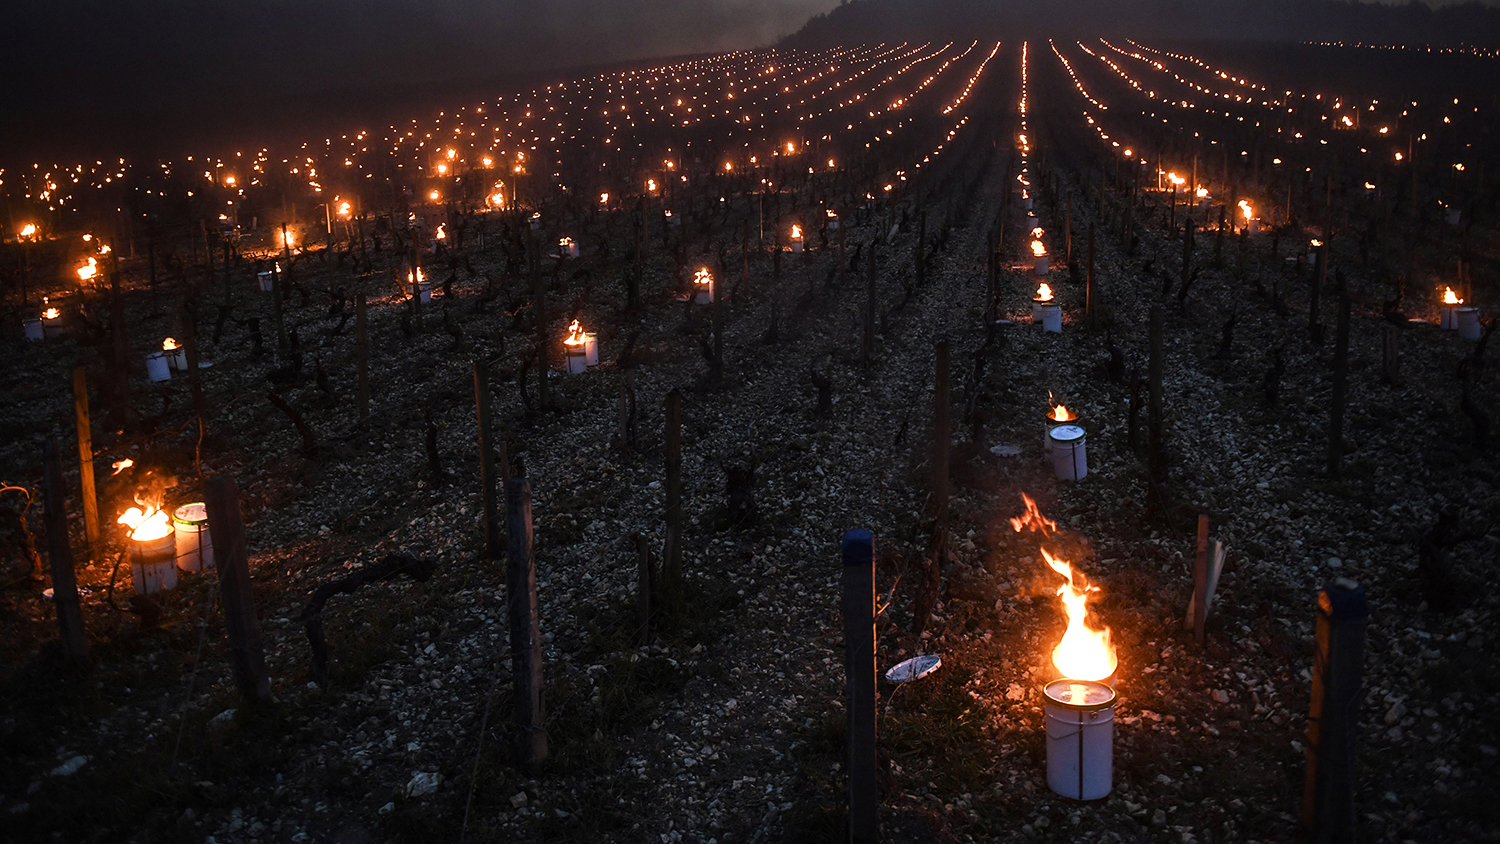 heating lamps in french vineyards